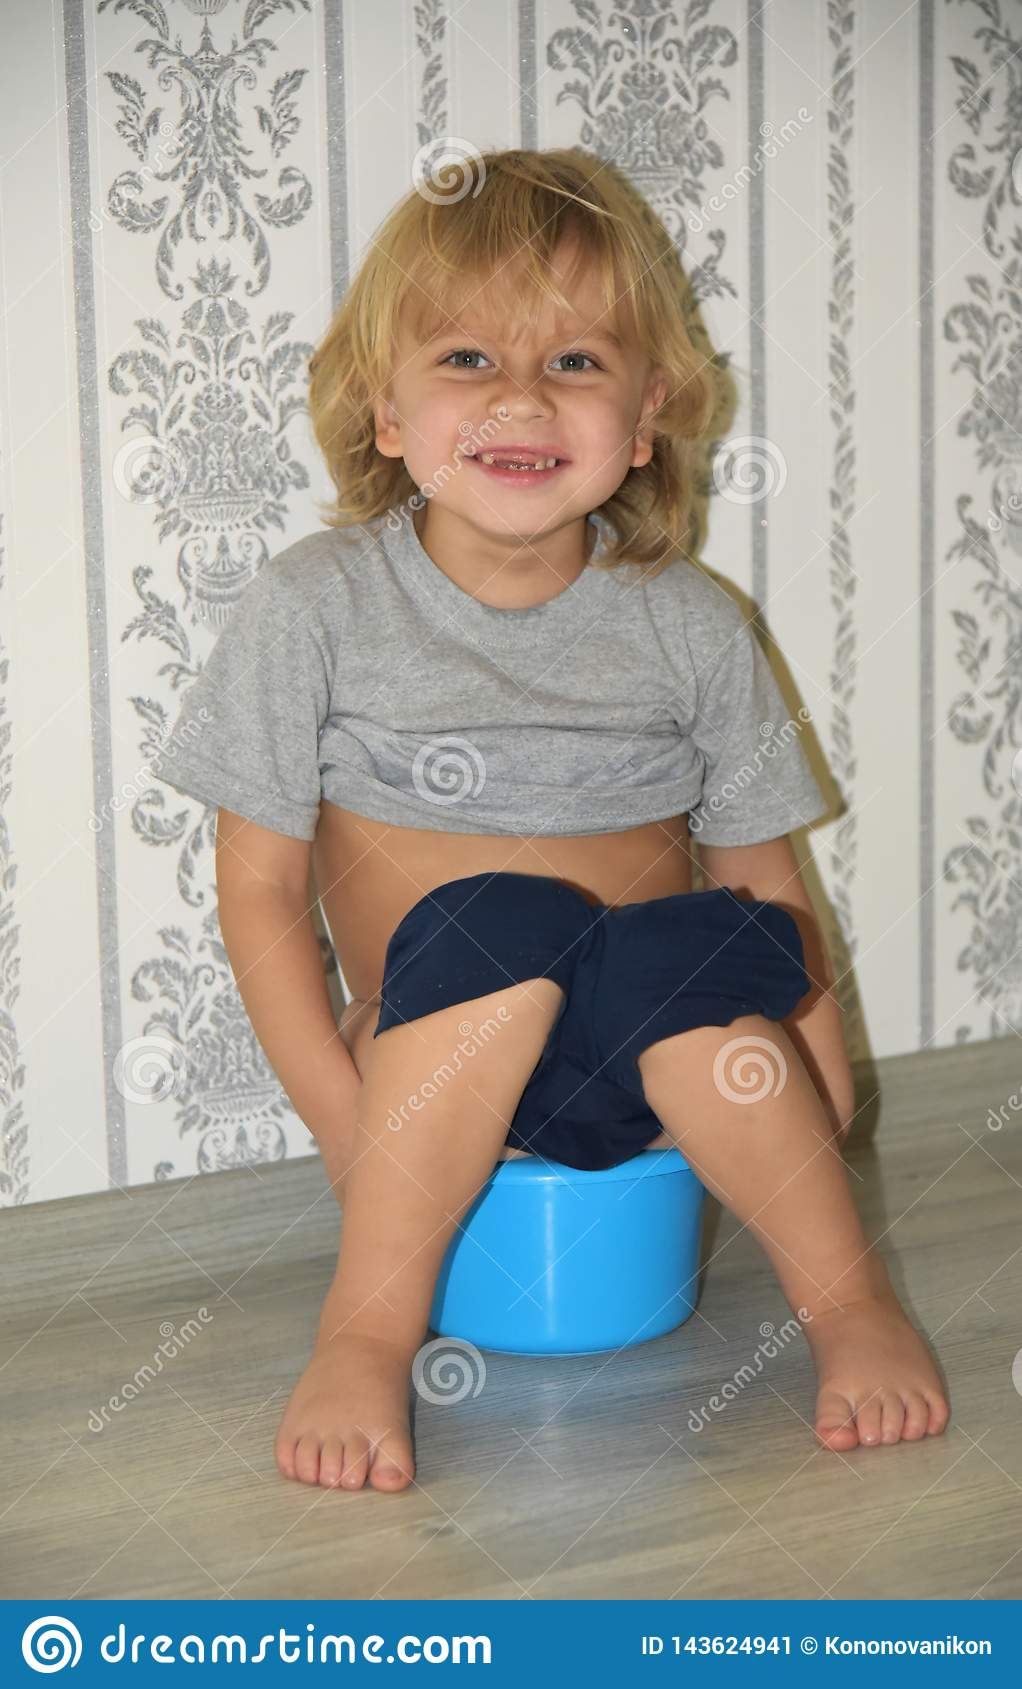 Very happy little boy 4 years old sitting on the potty and smiles. Portrait of a blond boy